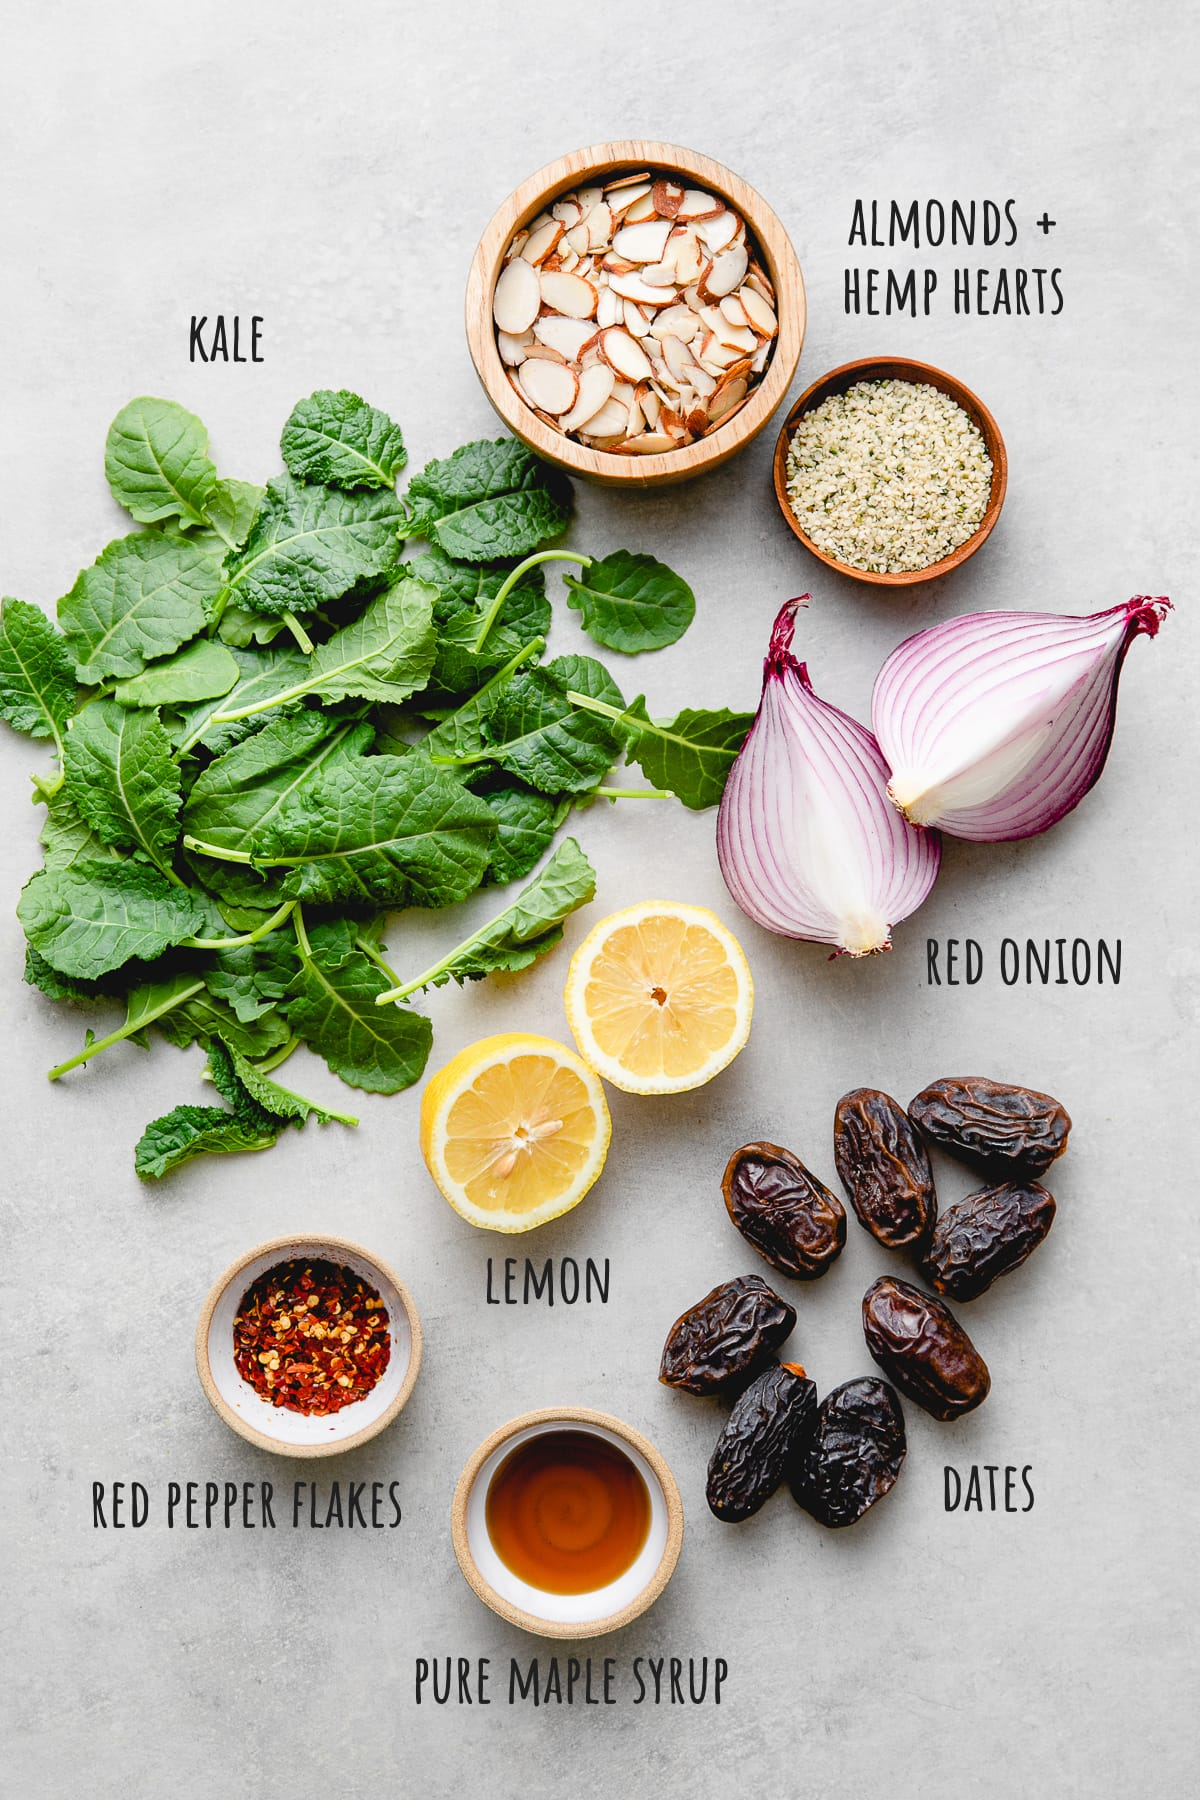 top down view of ingredients used to make healthy kale, date, and almond salad recipe.